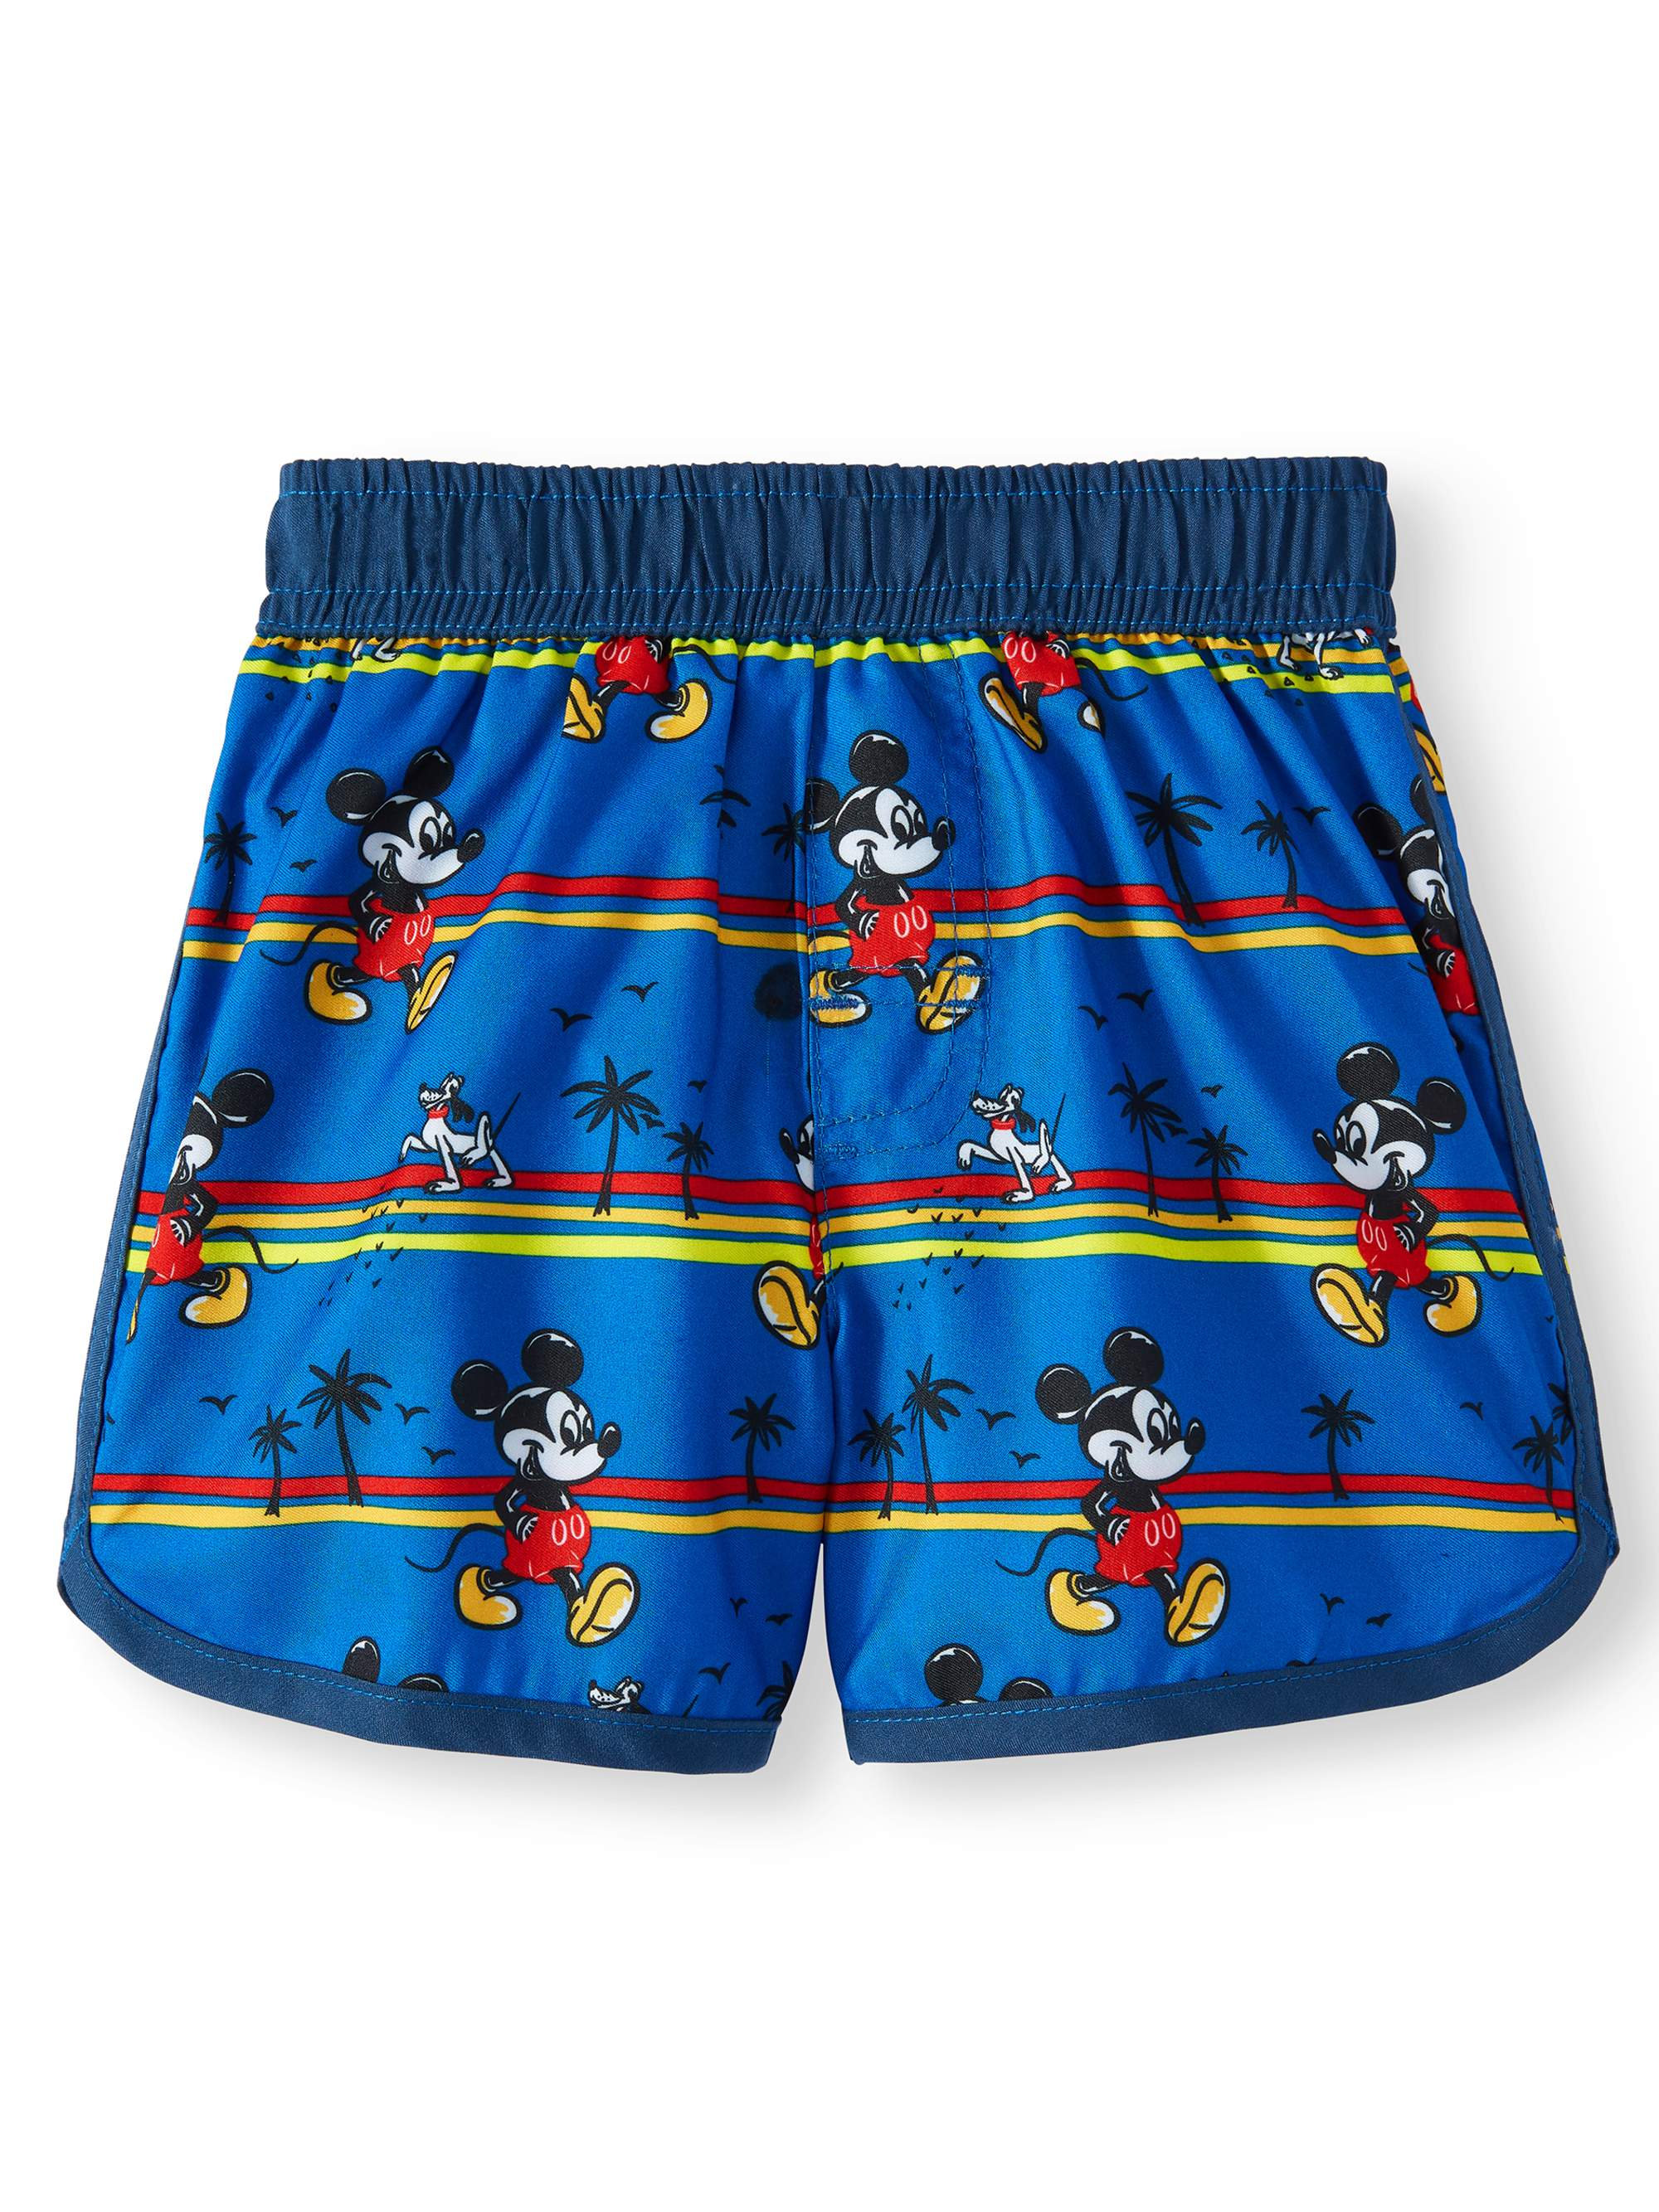 Baby Boys' Swim Trunks